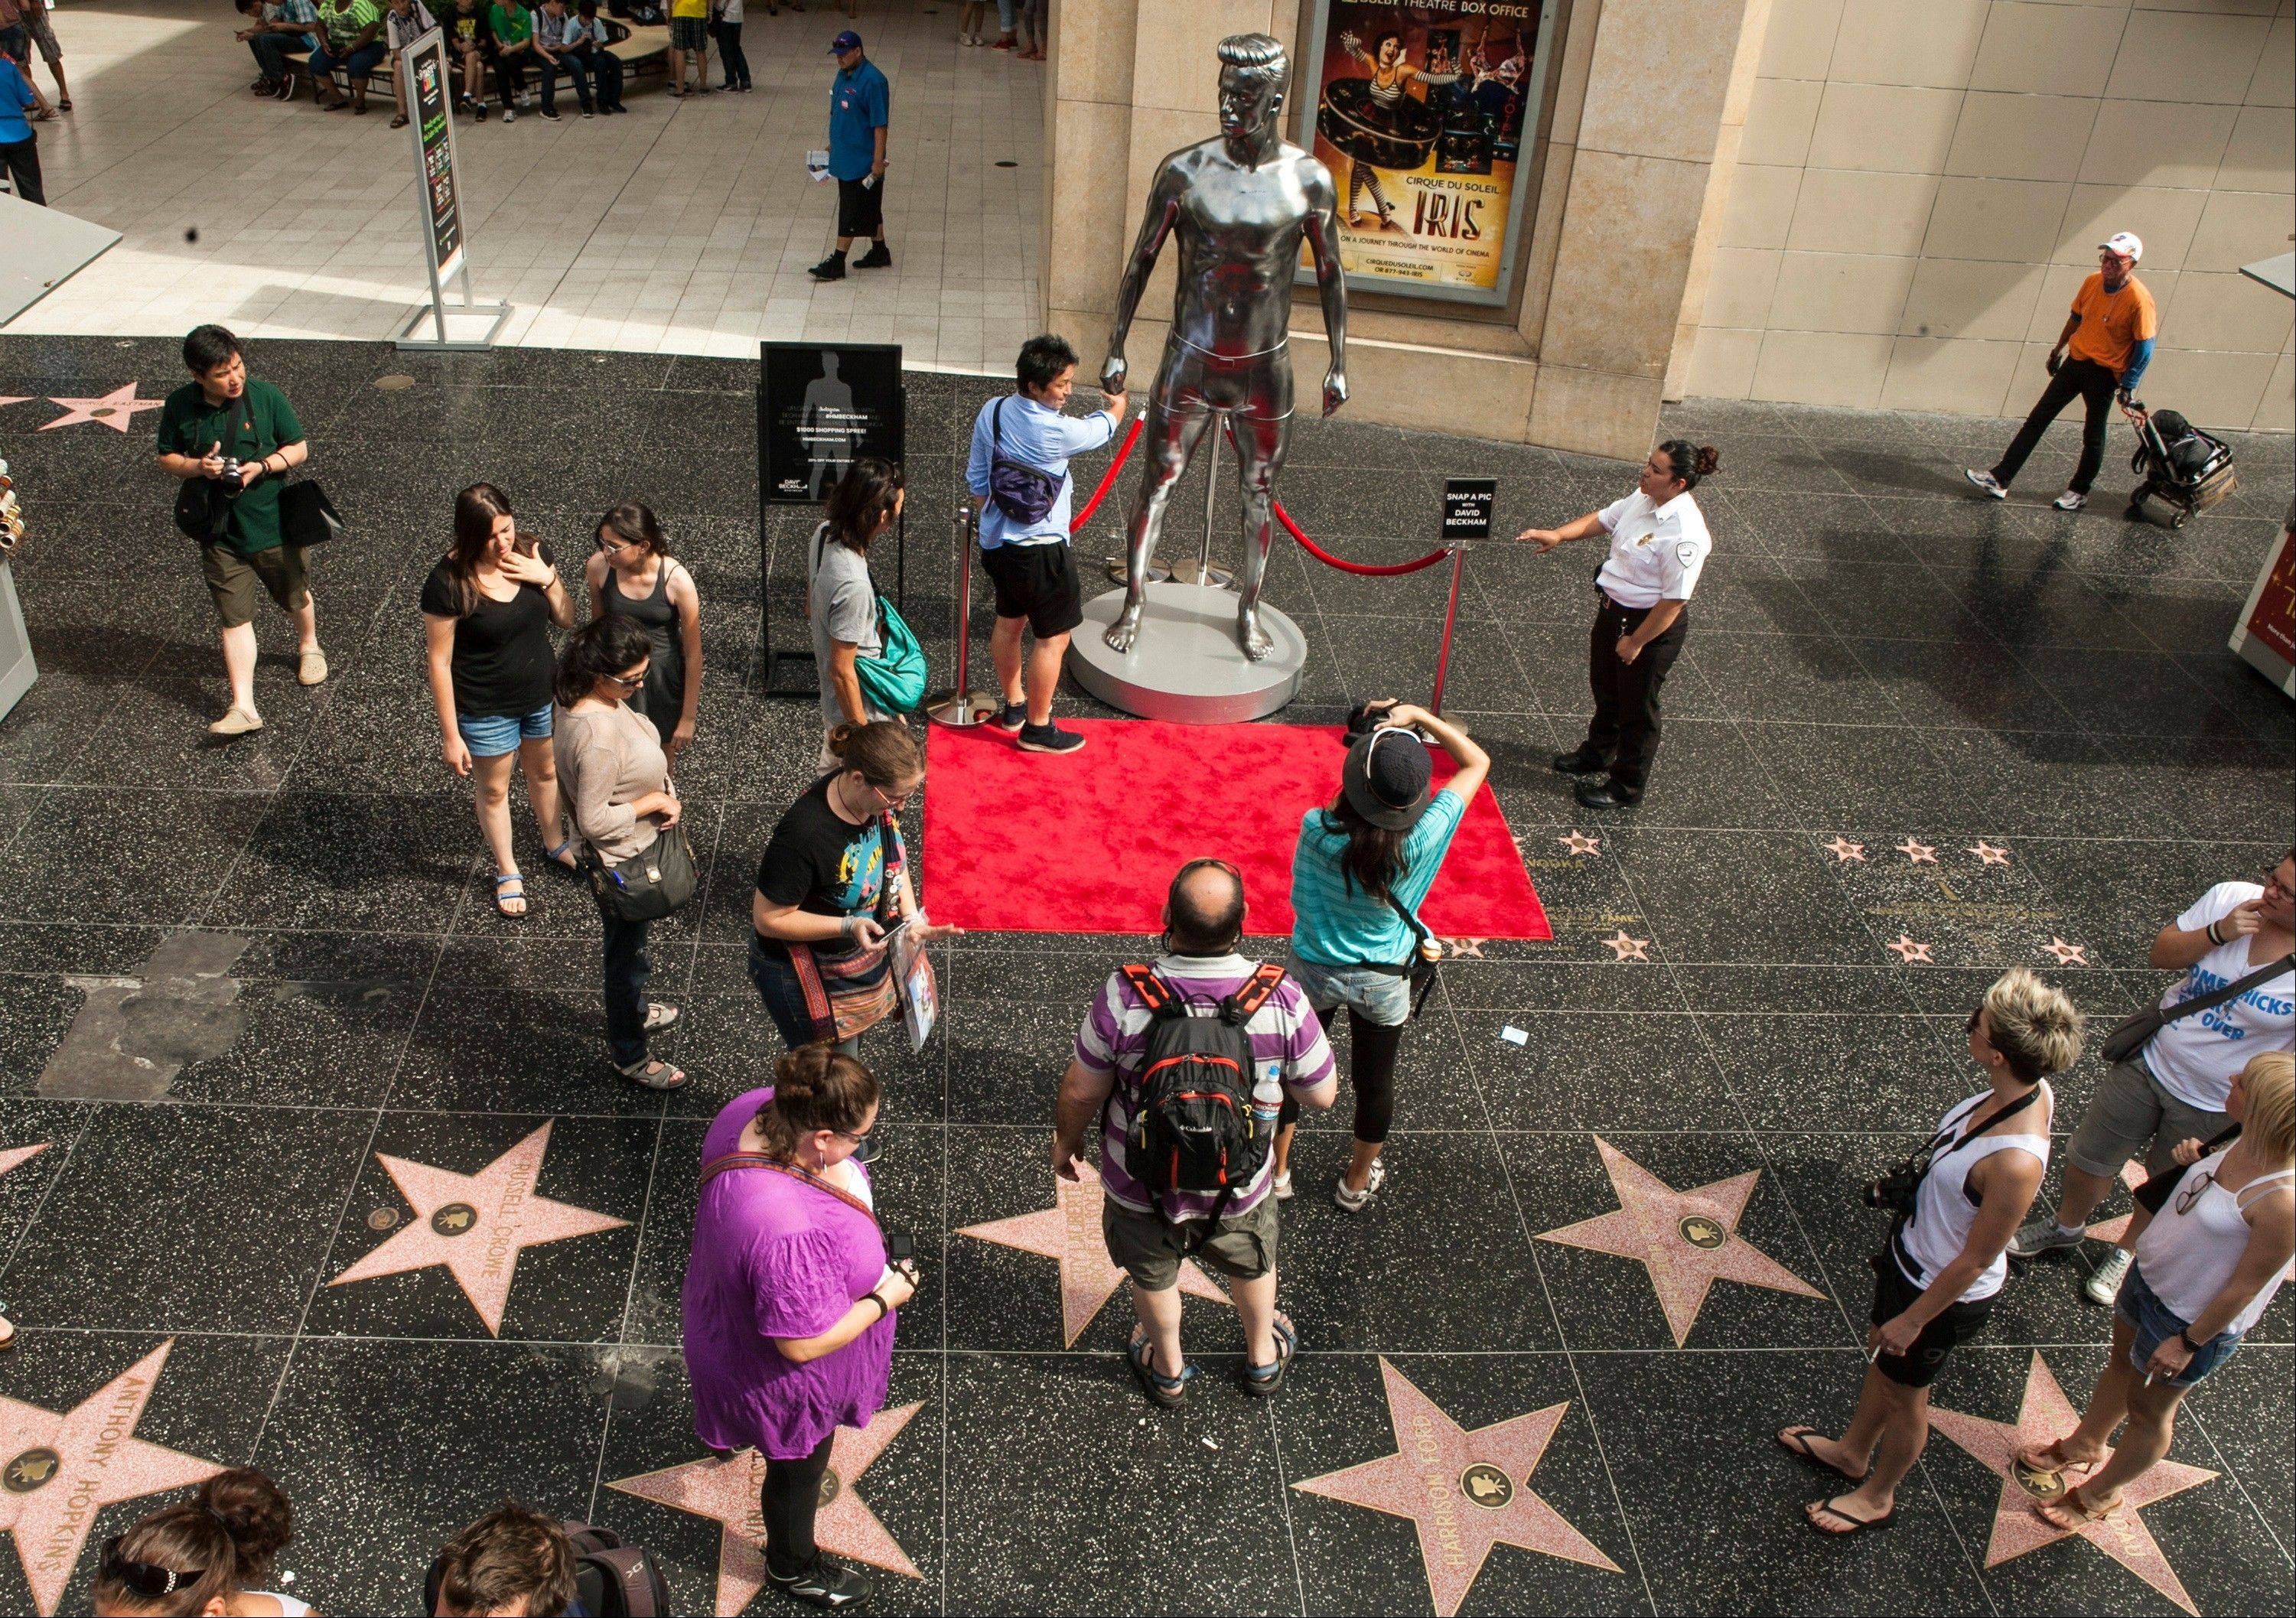 Tourists take photos with a 10-foot statue created and modeled after English soccer star David Beckham displayed in the Hollywood section of Los Angeles. The intersection of Hollywood and Highland is the crossroads for the Hollywood Walk of Fame.